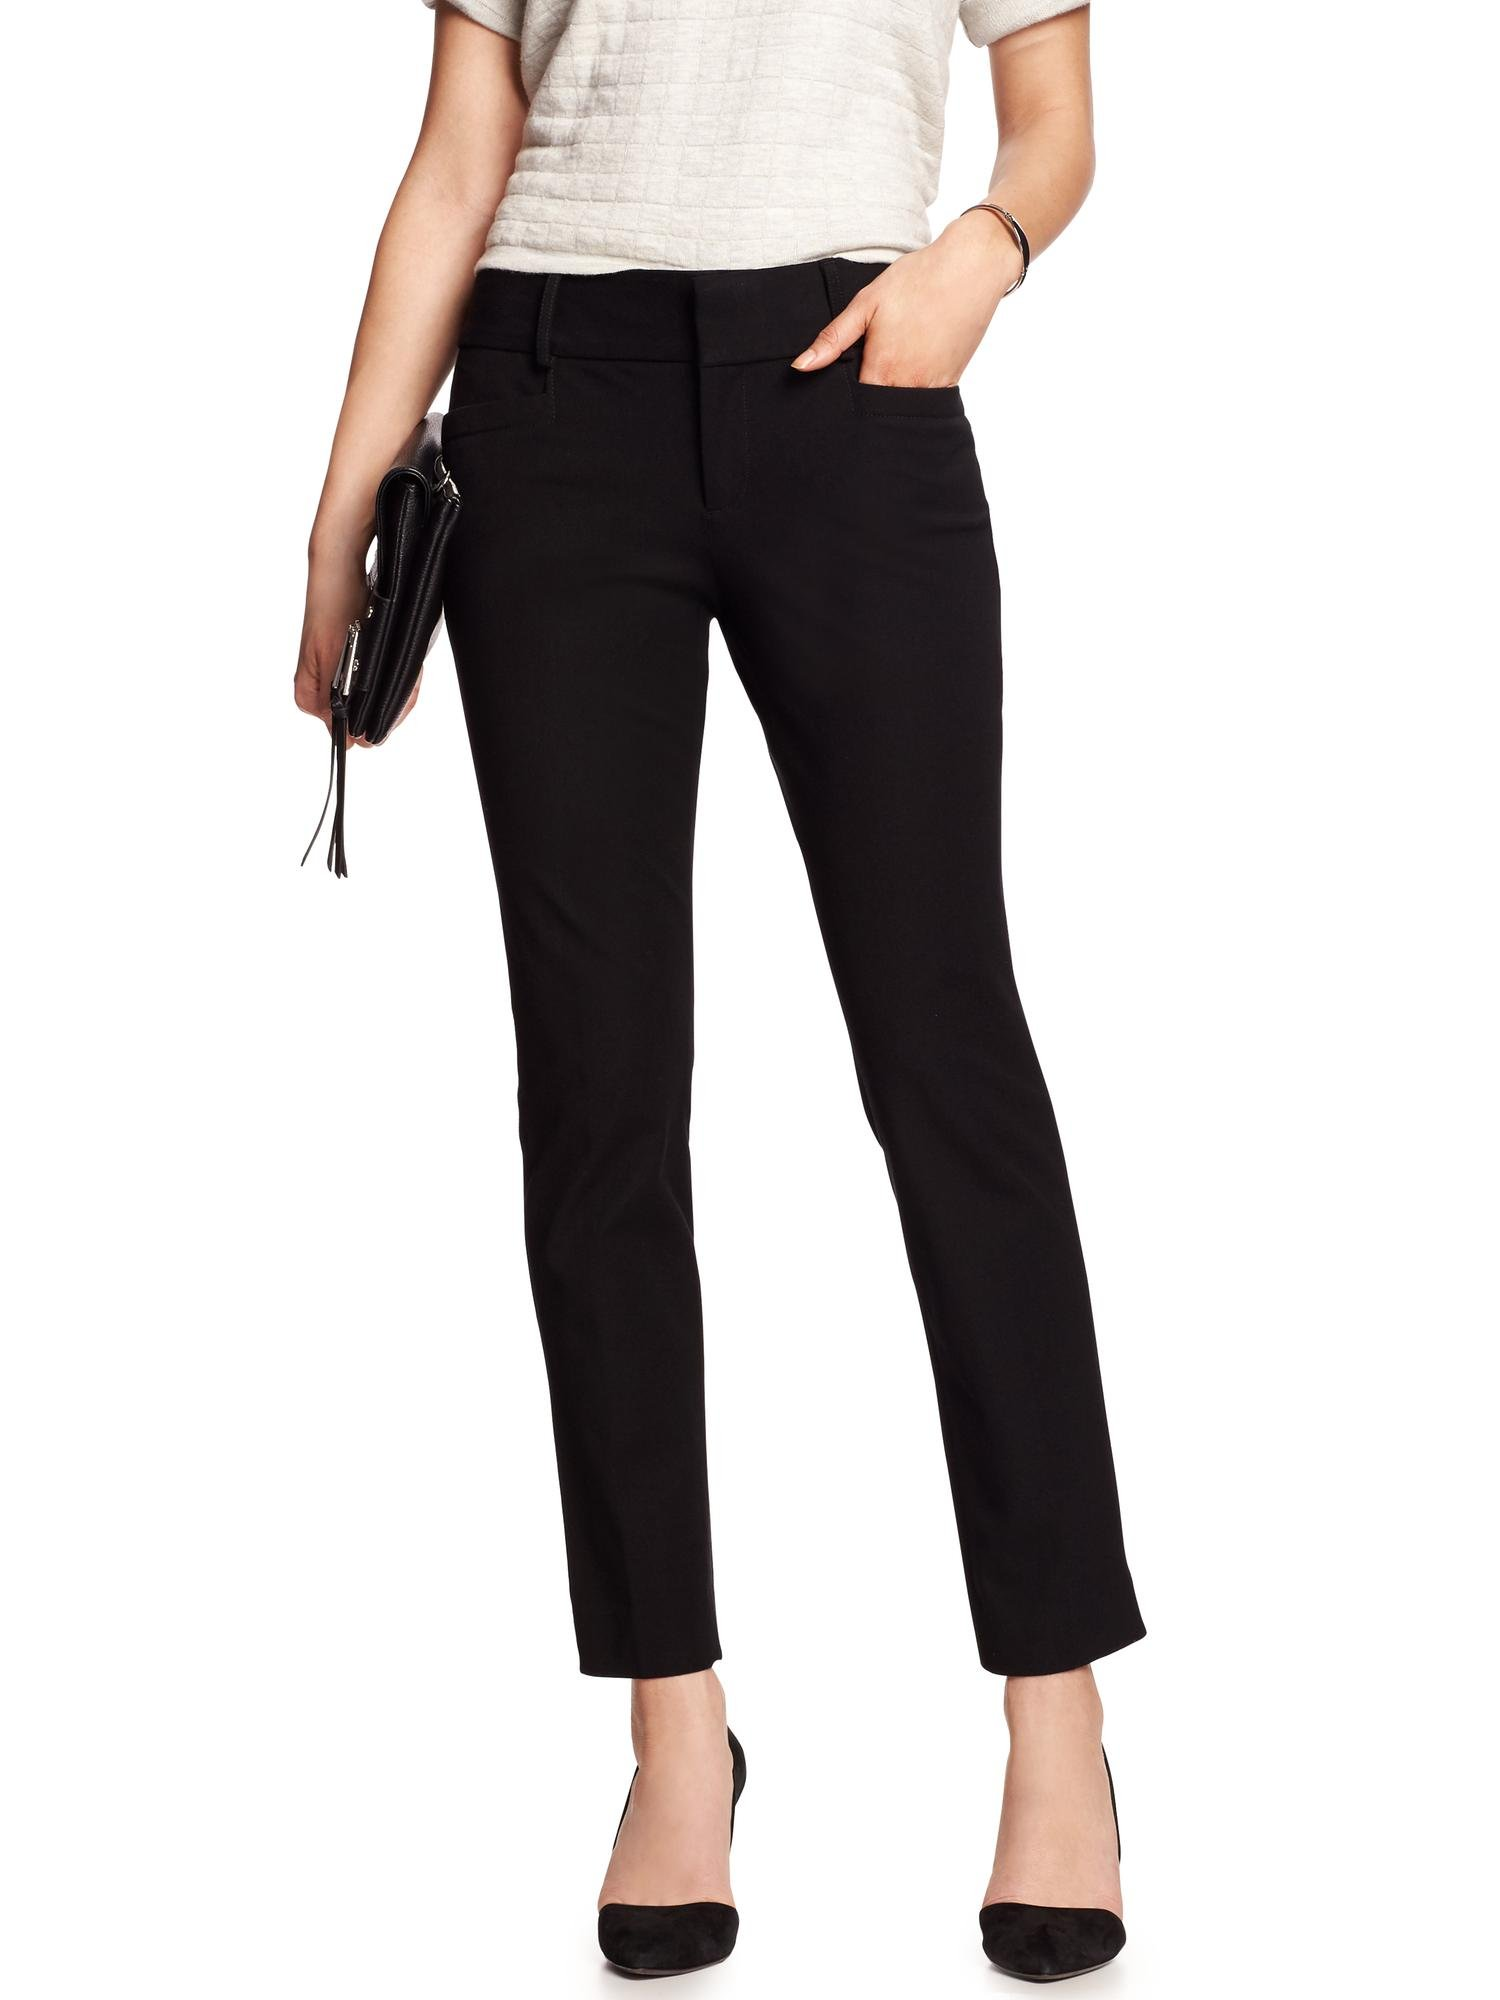 Banana Republic Women's Jackson-Fit Slim Ankle Pant Black Sz: 14